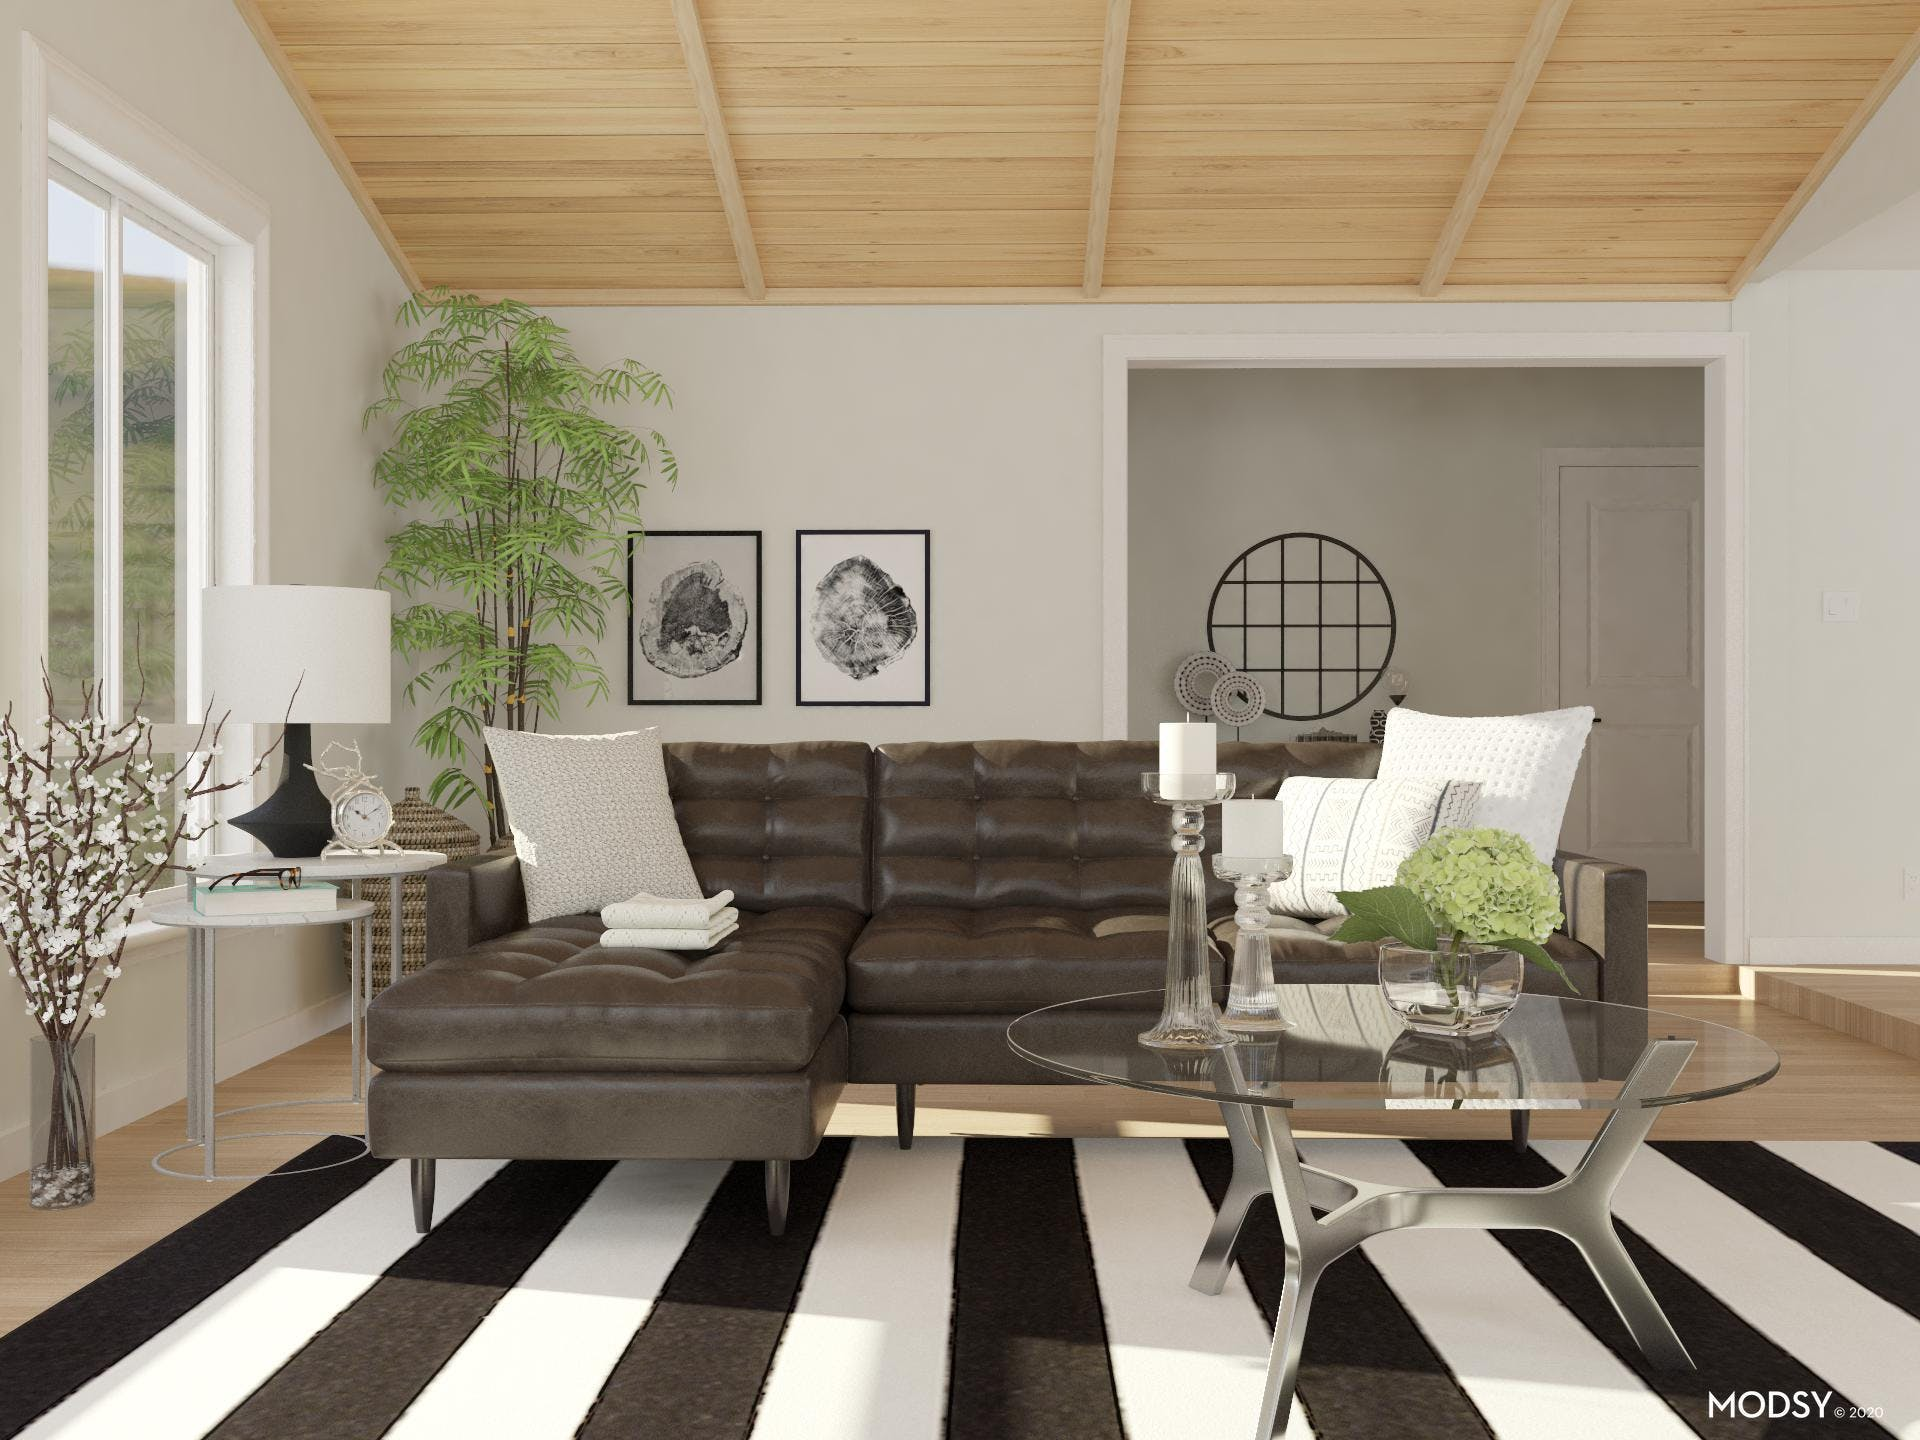 Black and White Mid-Century Living Room